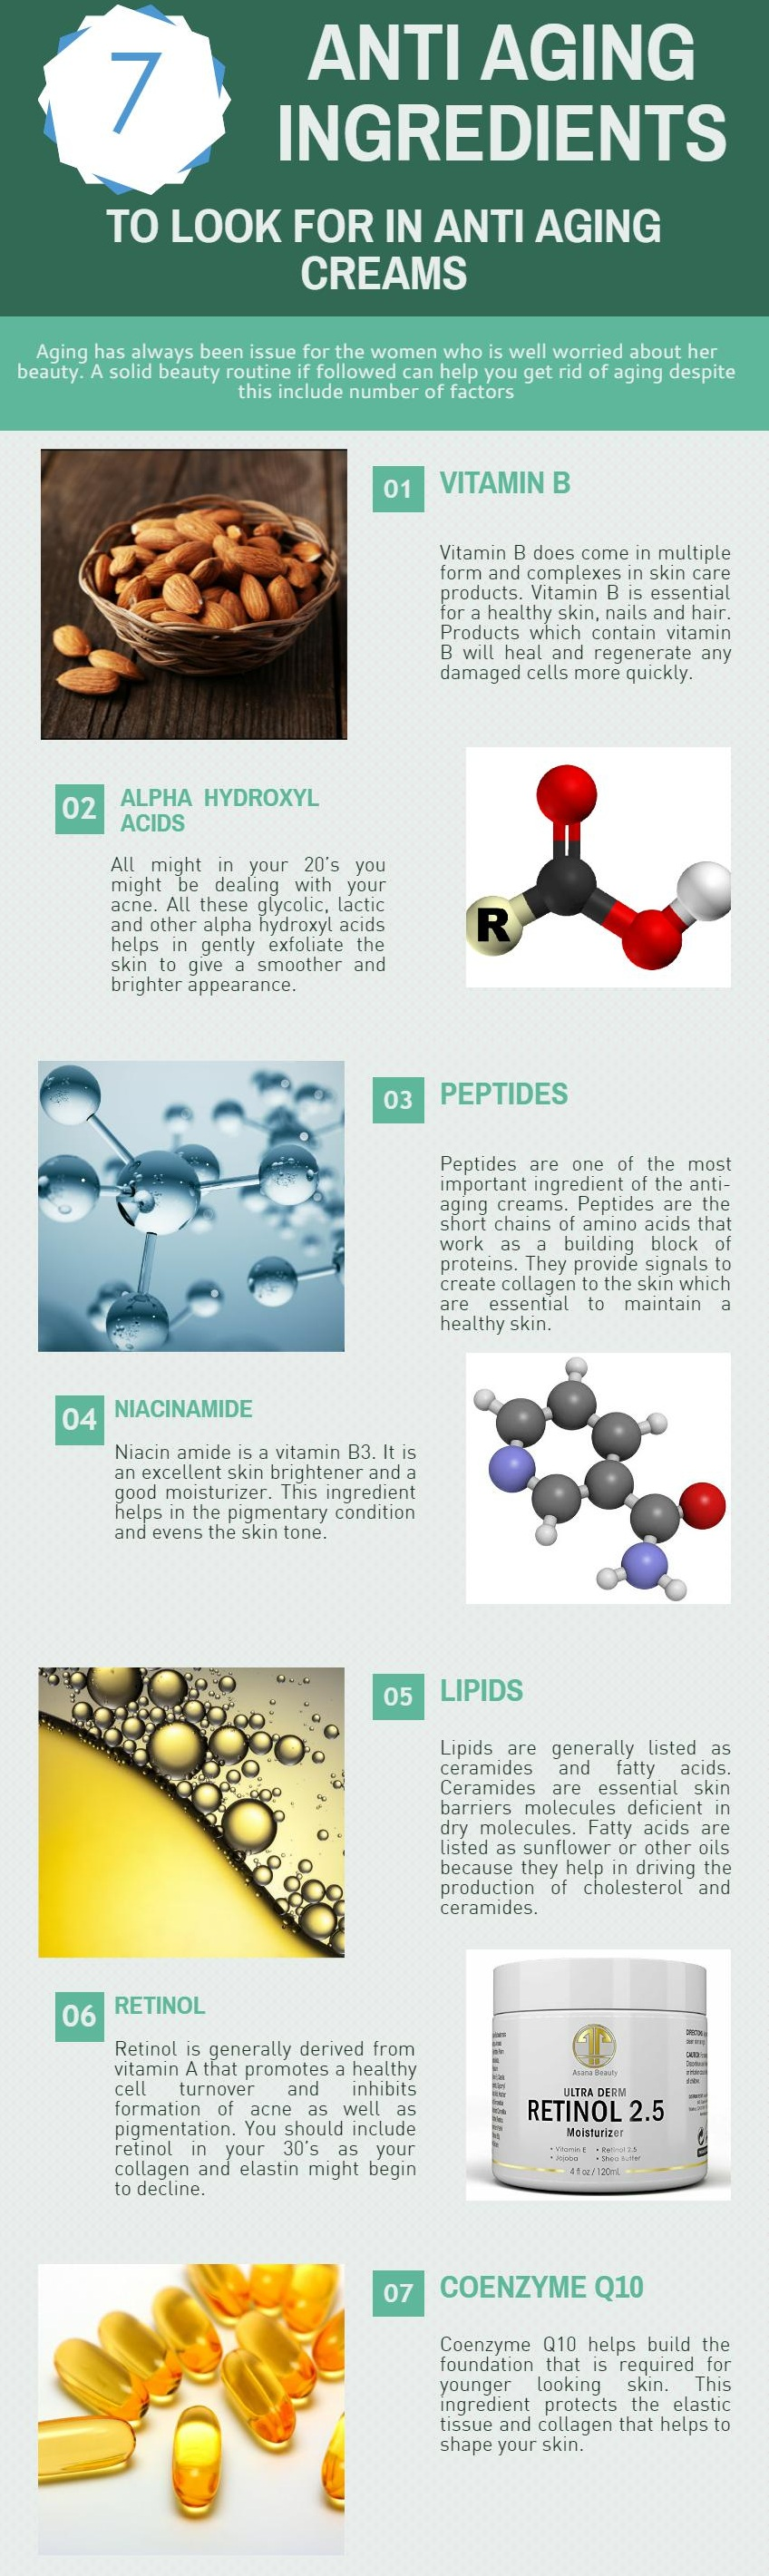 anti aging ingredients infographic